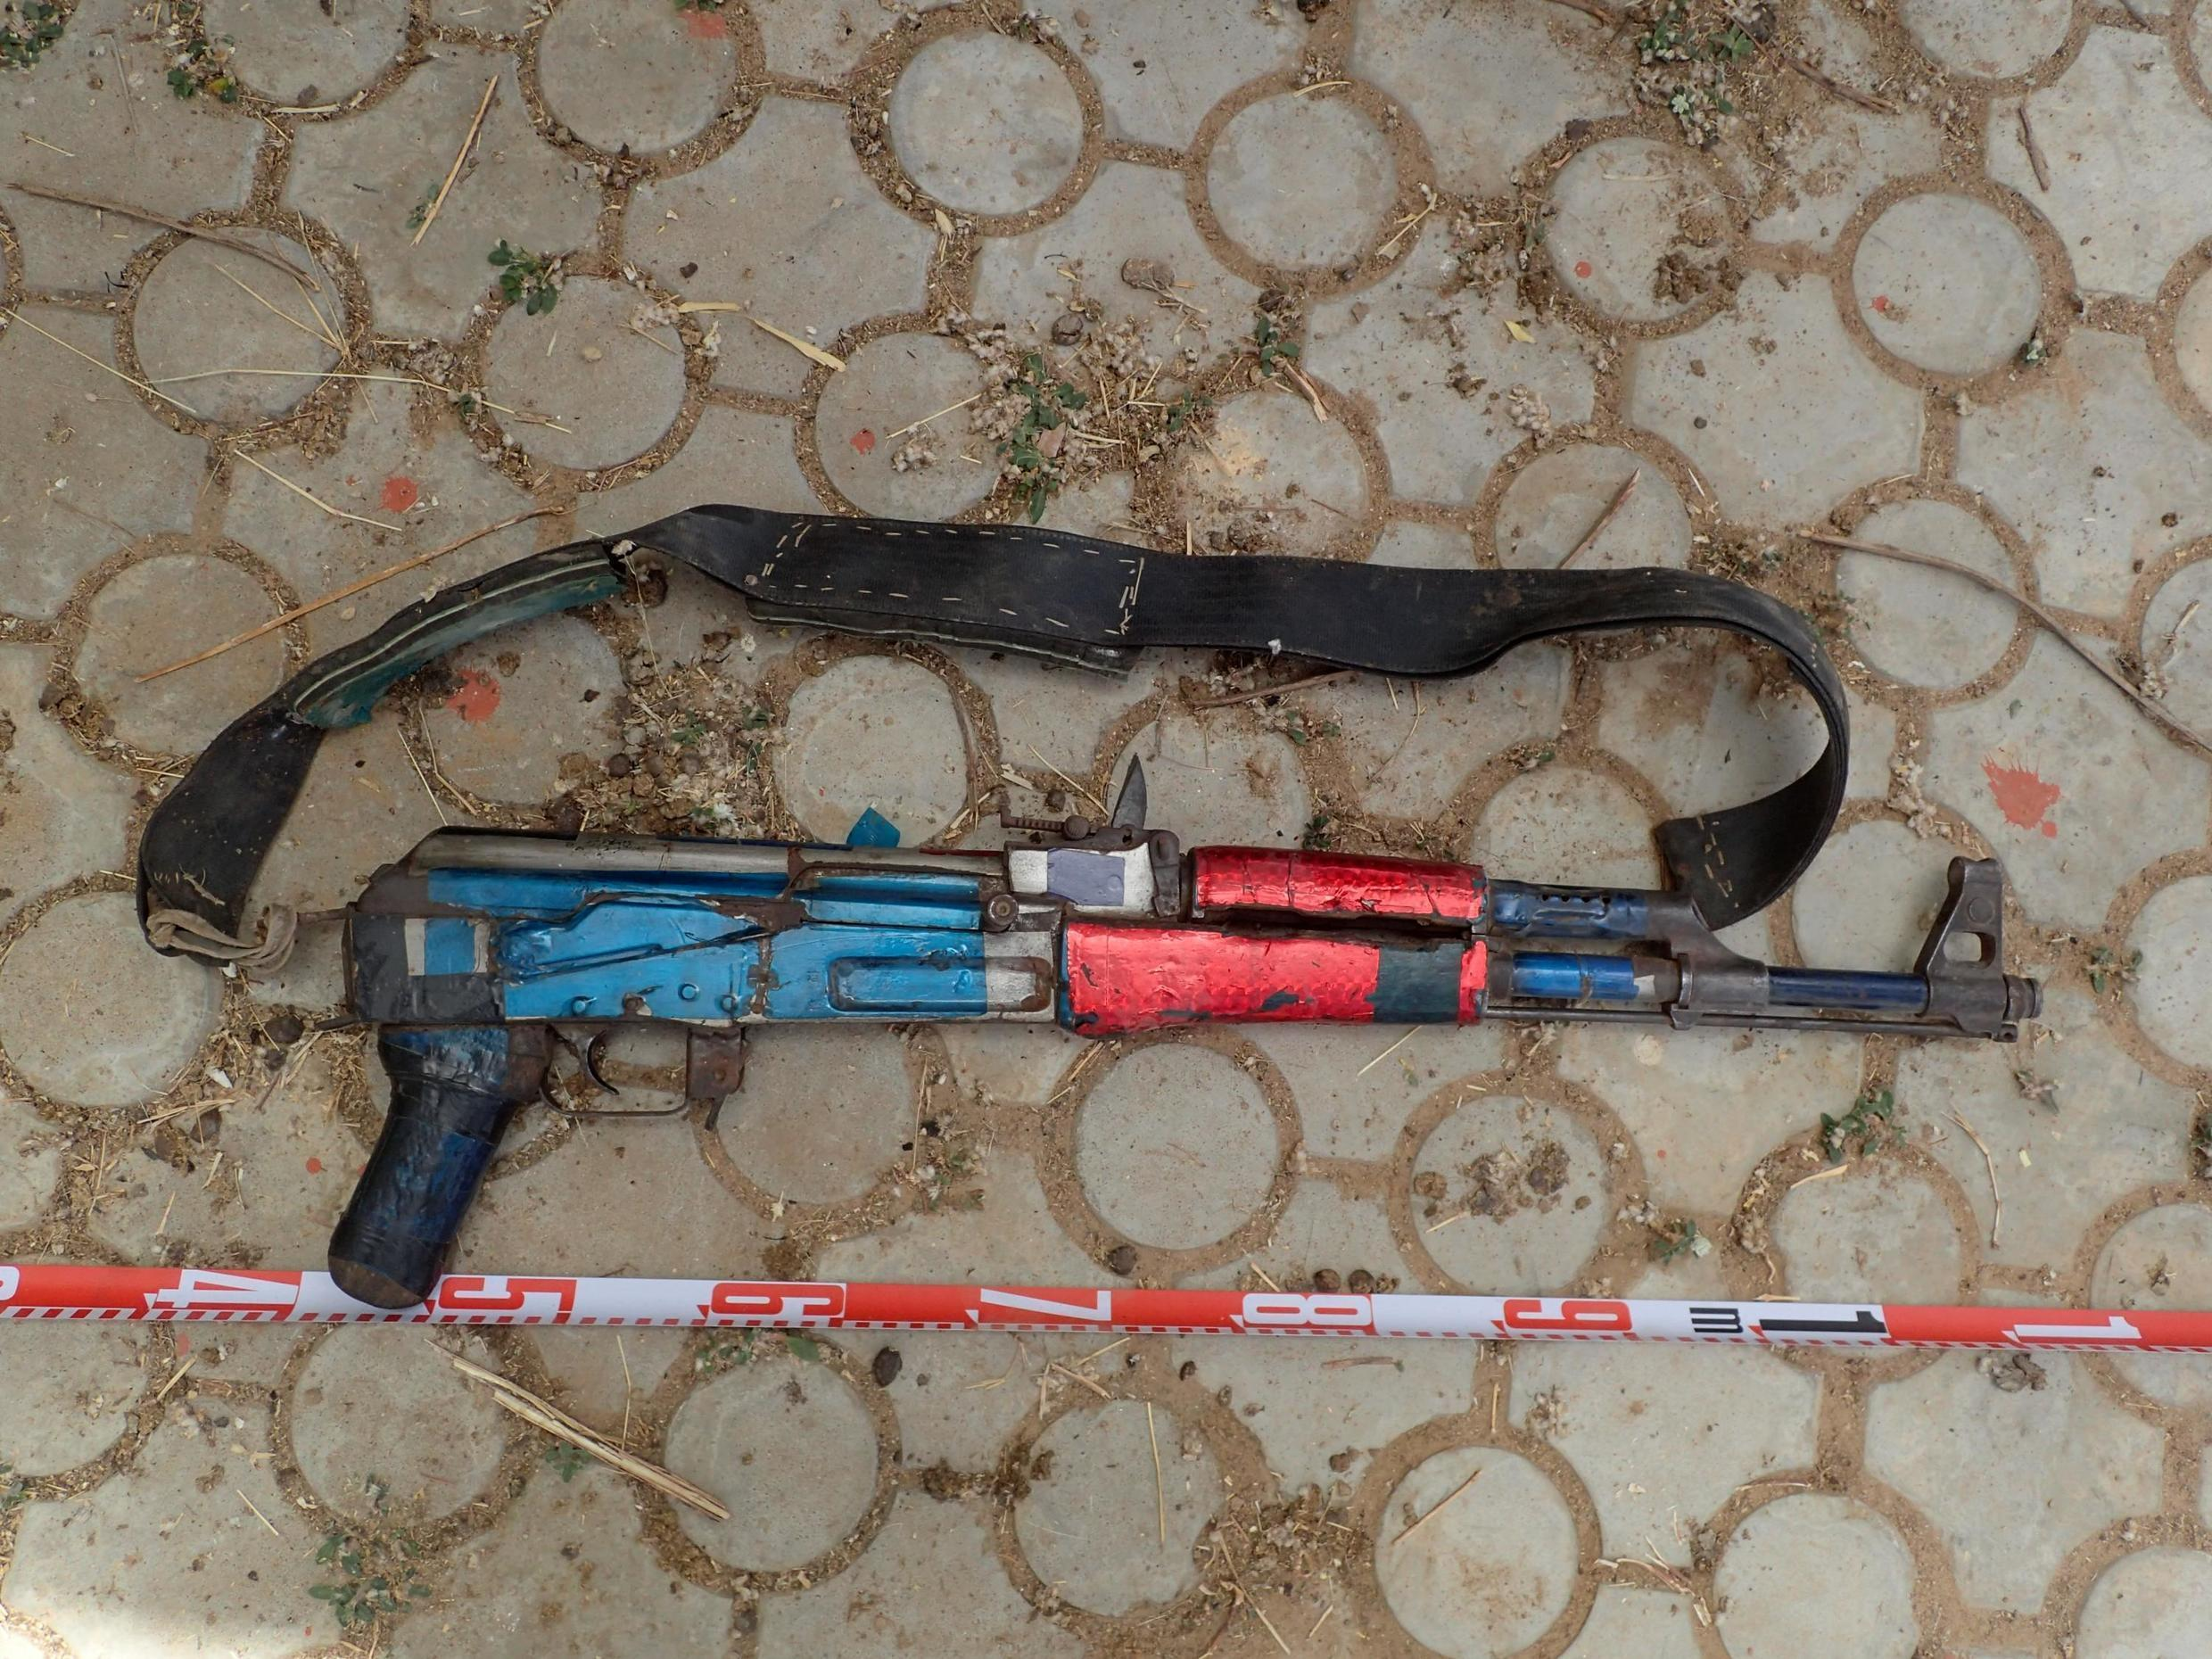 Chinese-manufactured assault rifle seized from Buharin Daji armed group in Shinkafi Local Government Area, Zamfara State, Nigeria, documented by Conflict Armament Research in March 2018.